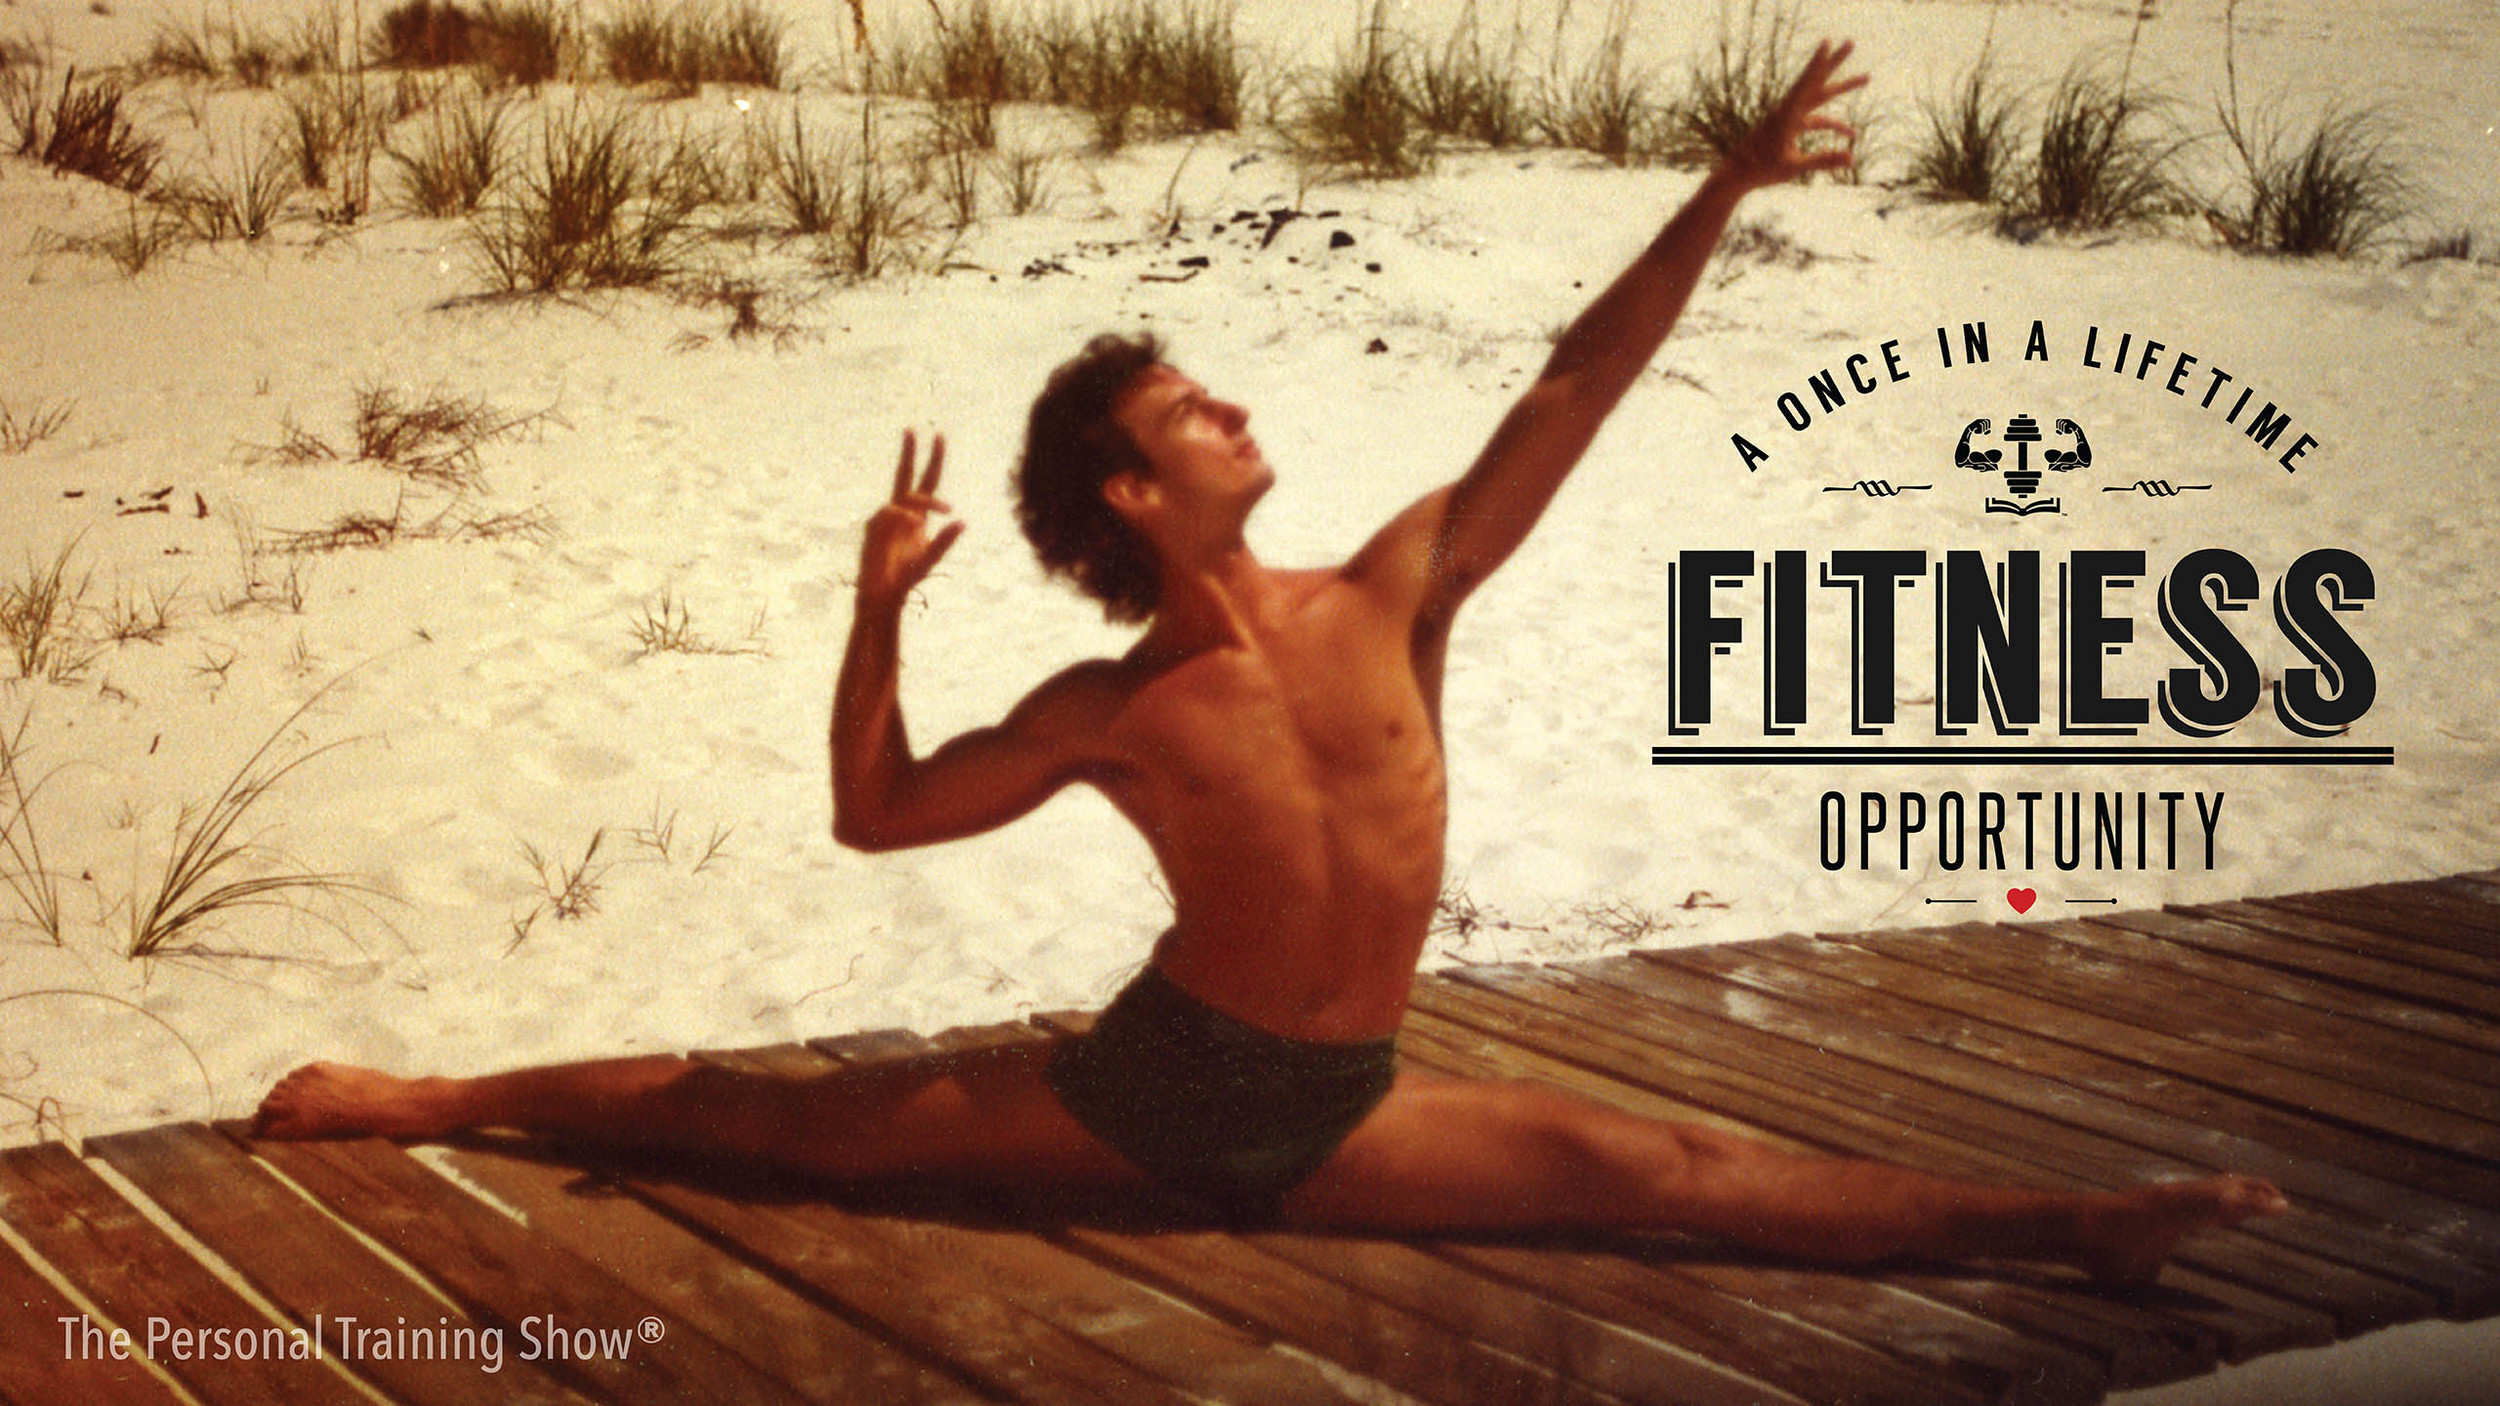 Fitness Is A Once In A Lifetime Opportunity